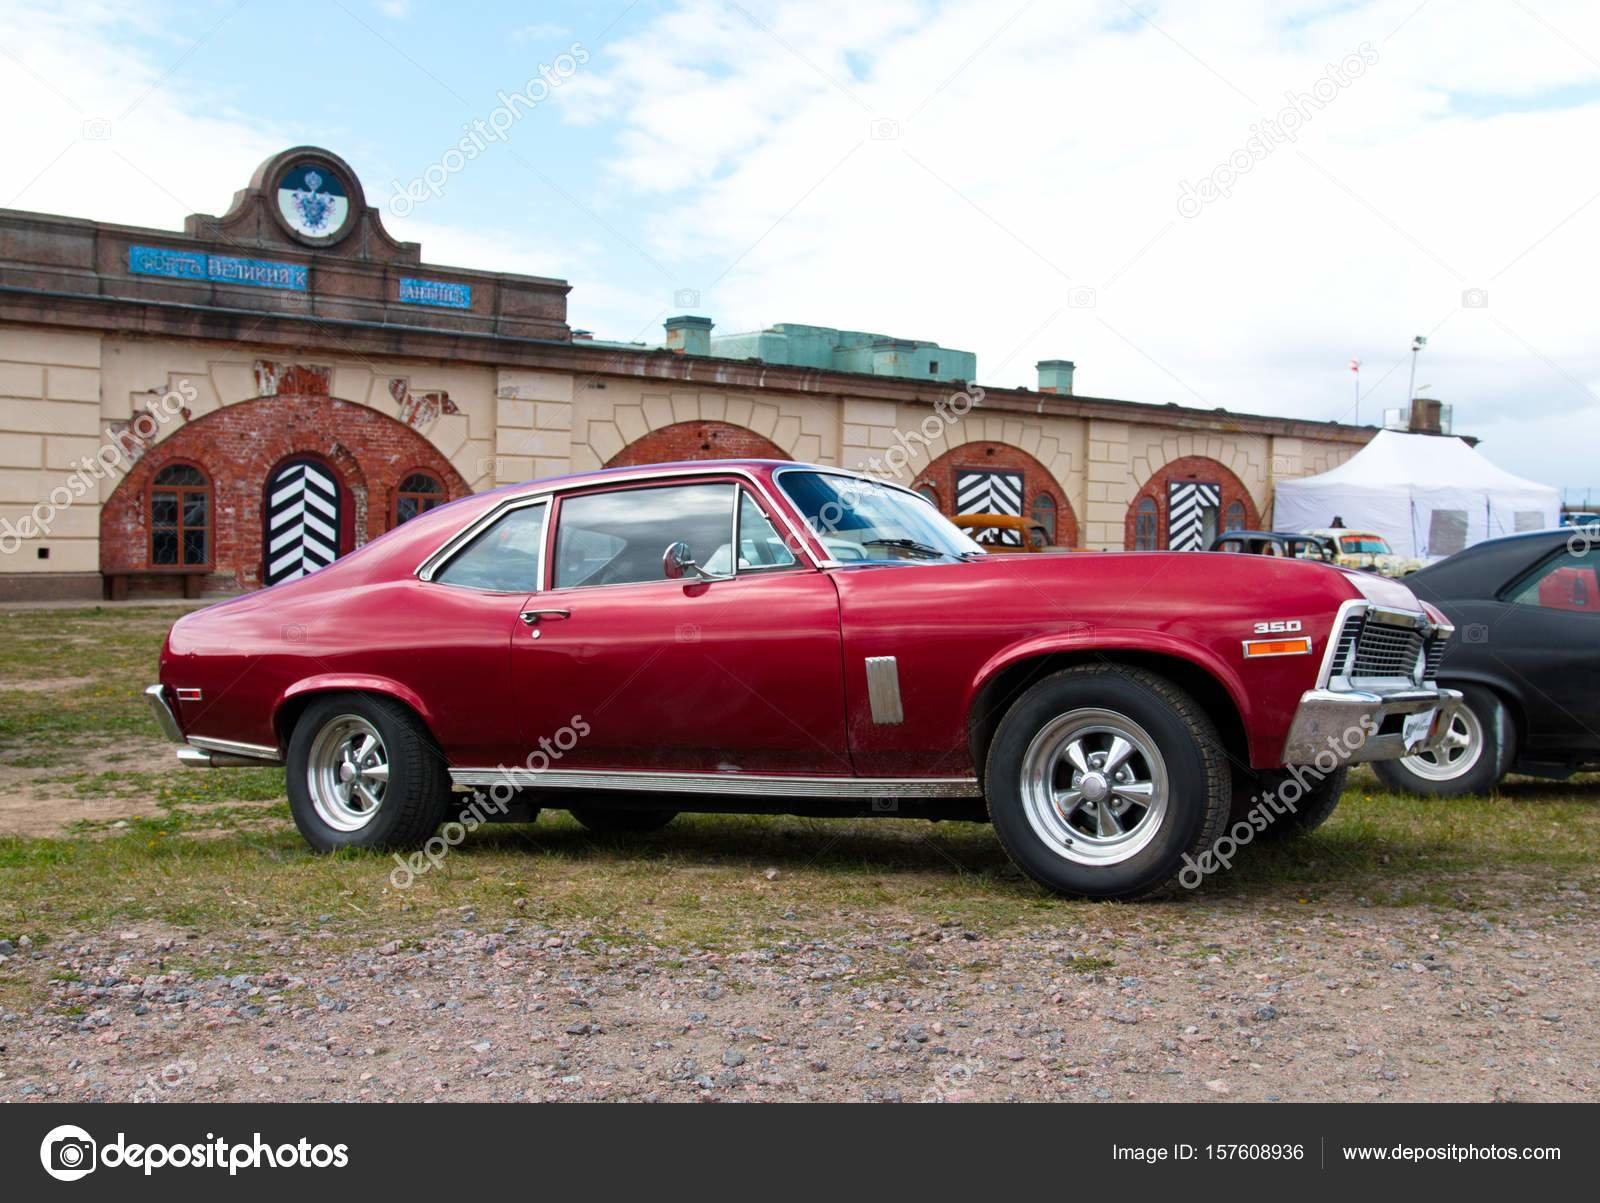 Latest Vintage American Muscle Car – Stock Editorial Photo Free Download